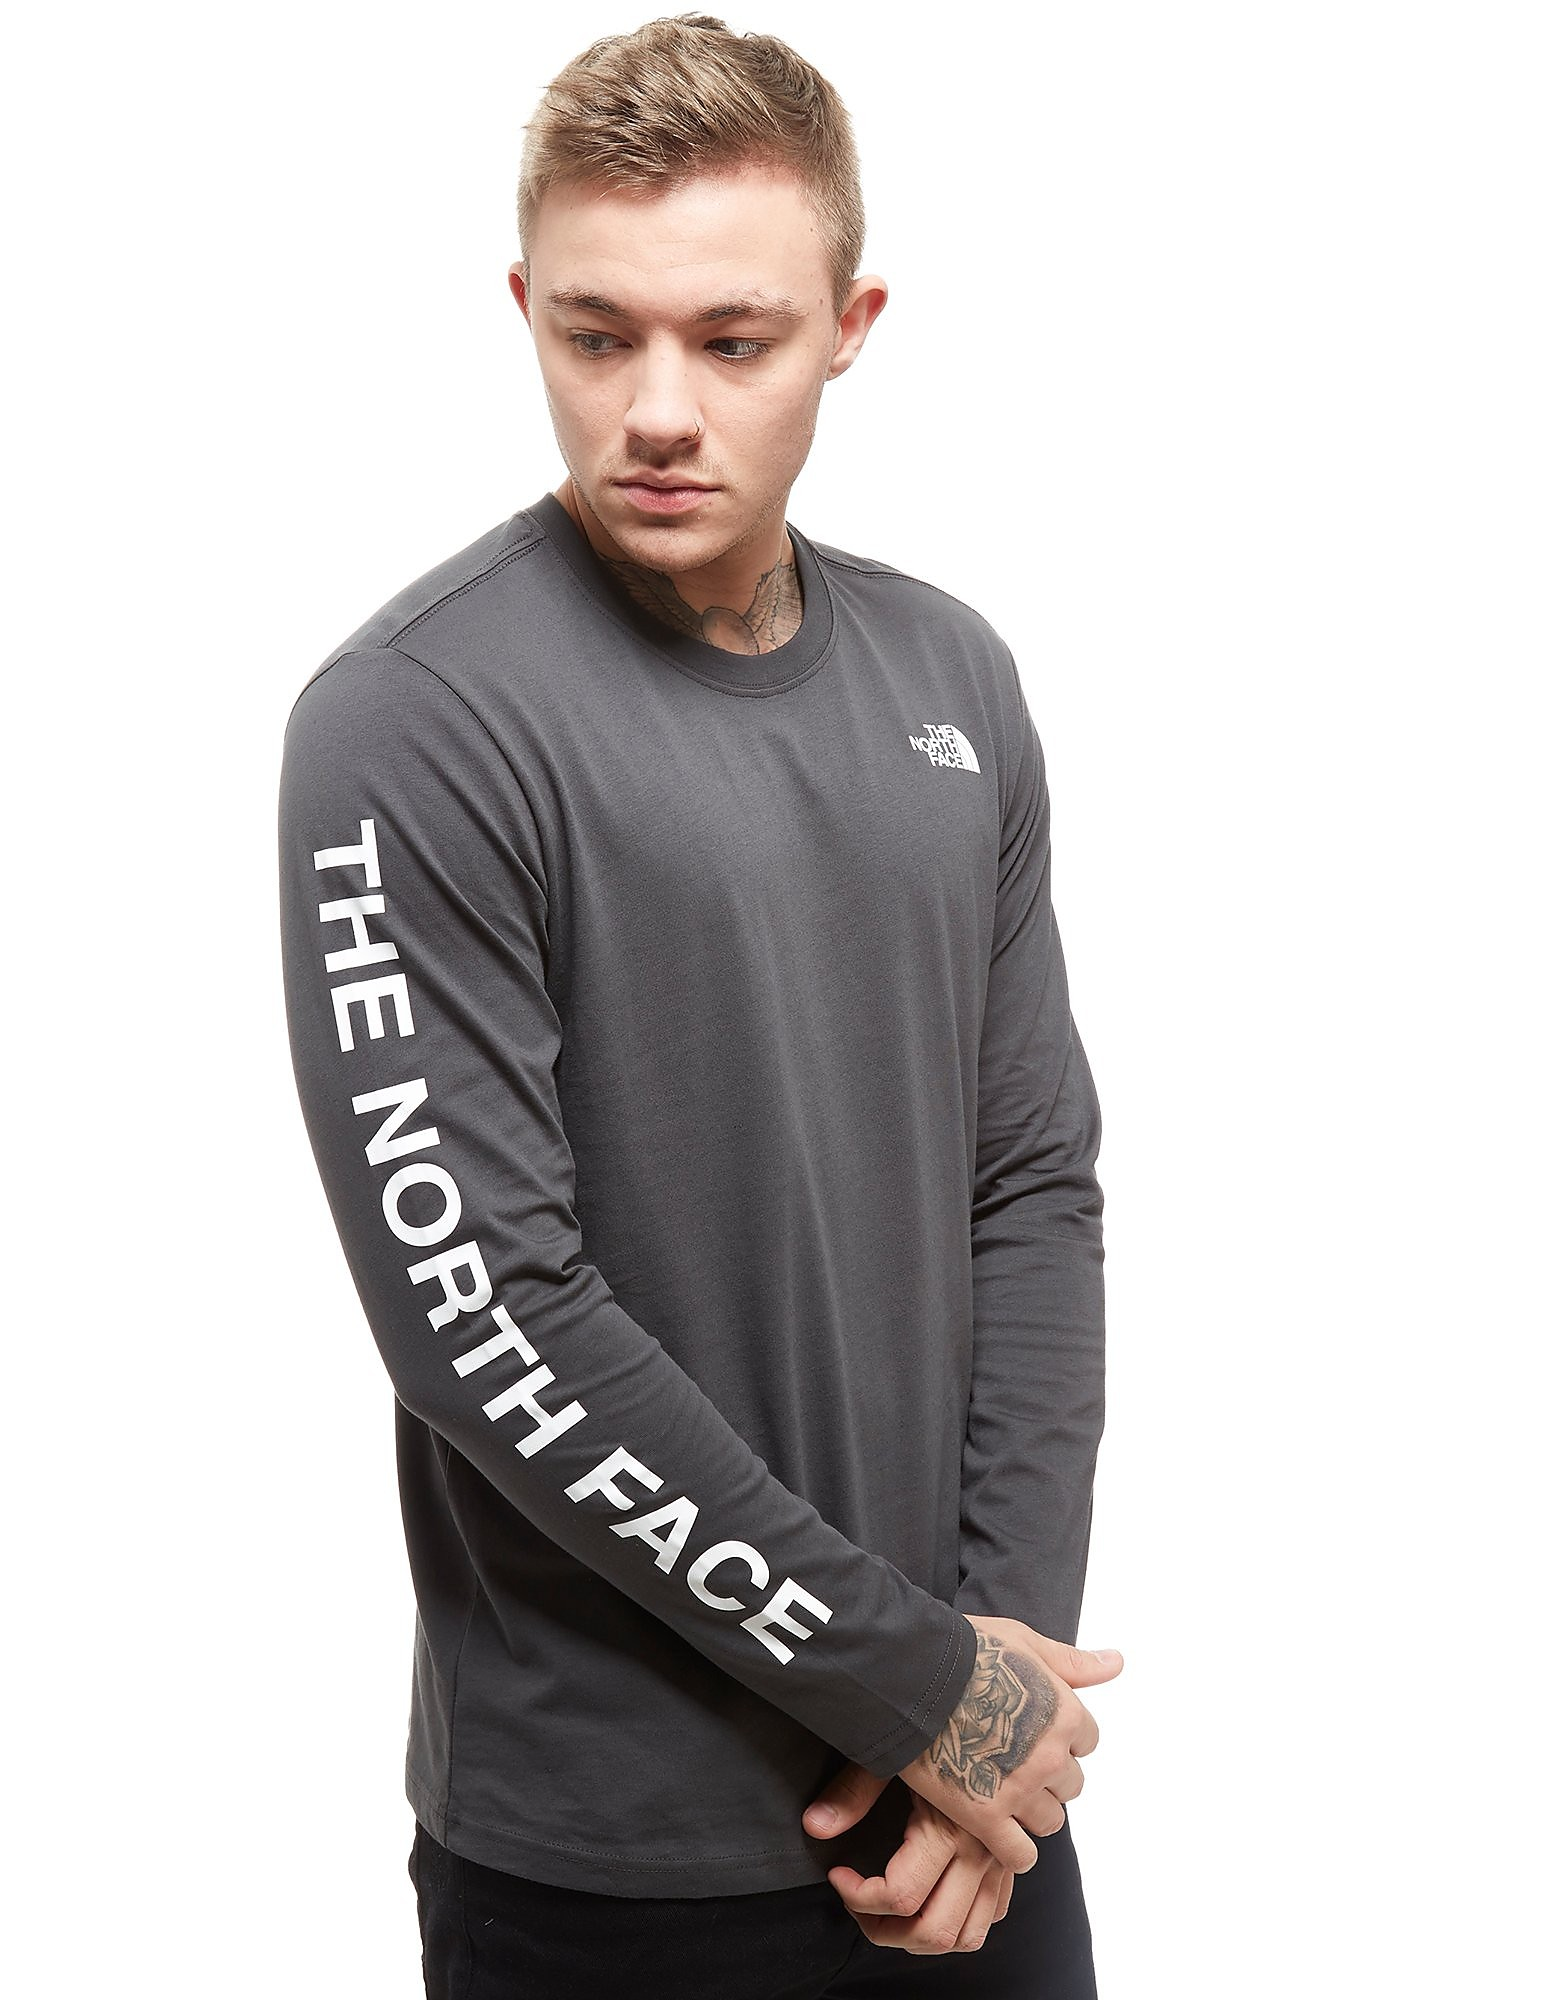 The North Face Printed Long Sleeve T-Shirt